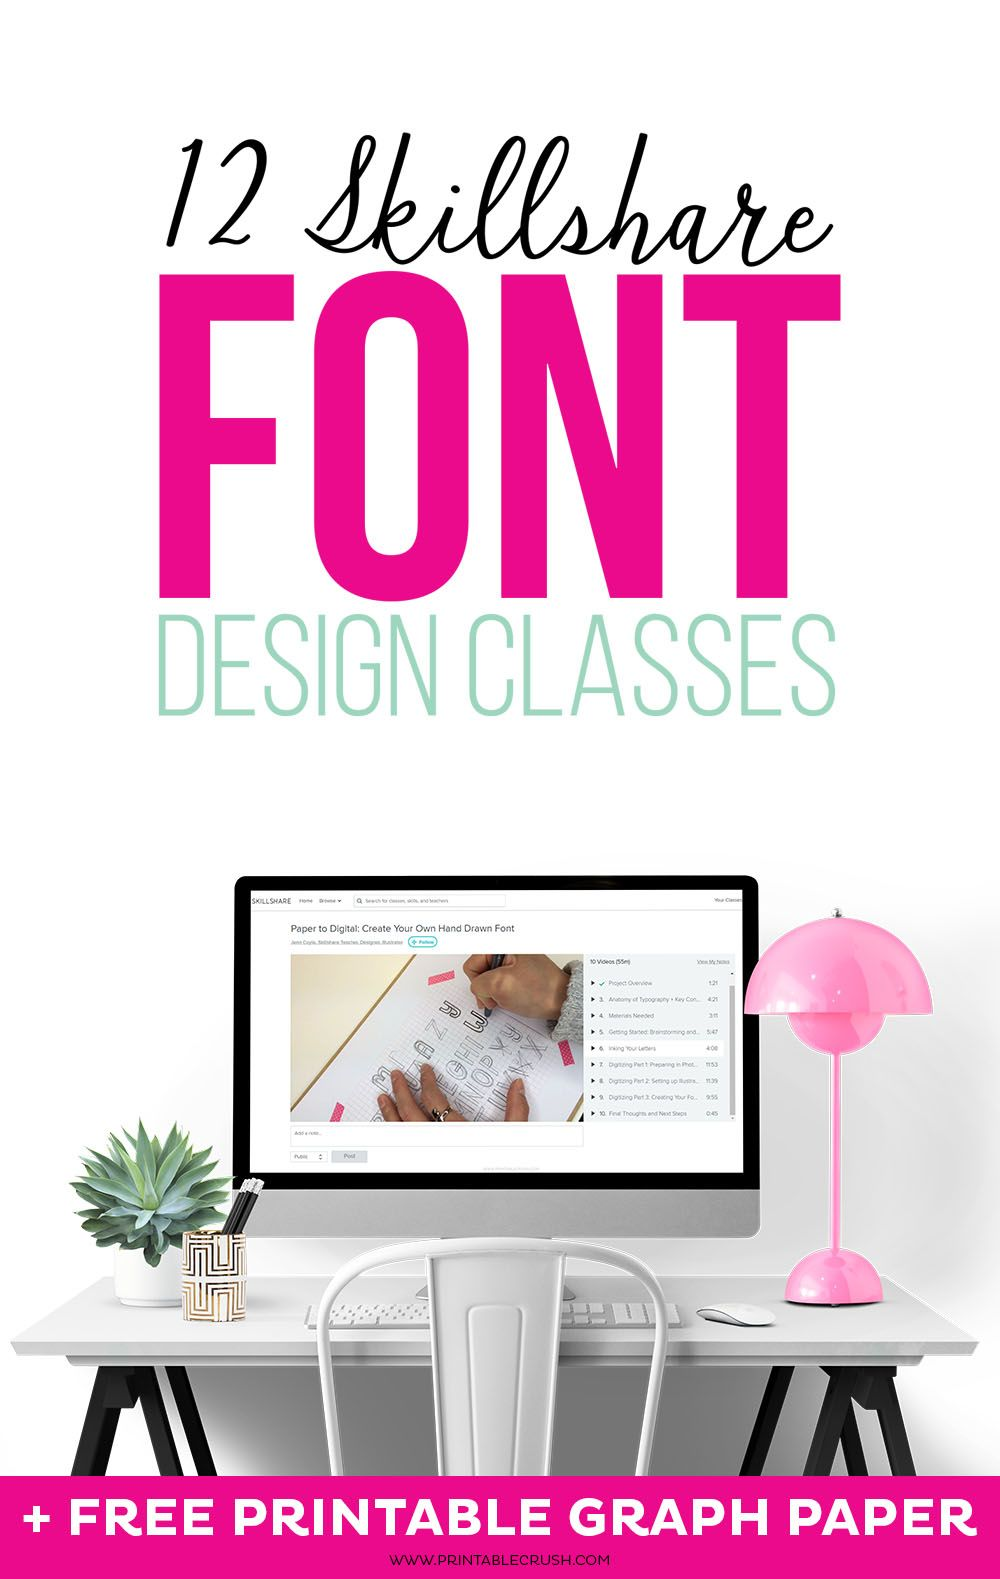 12 Skillshare Font Design Classes Graphic design